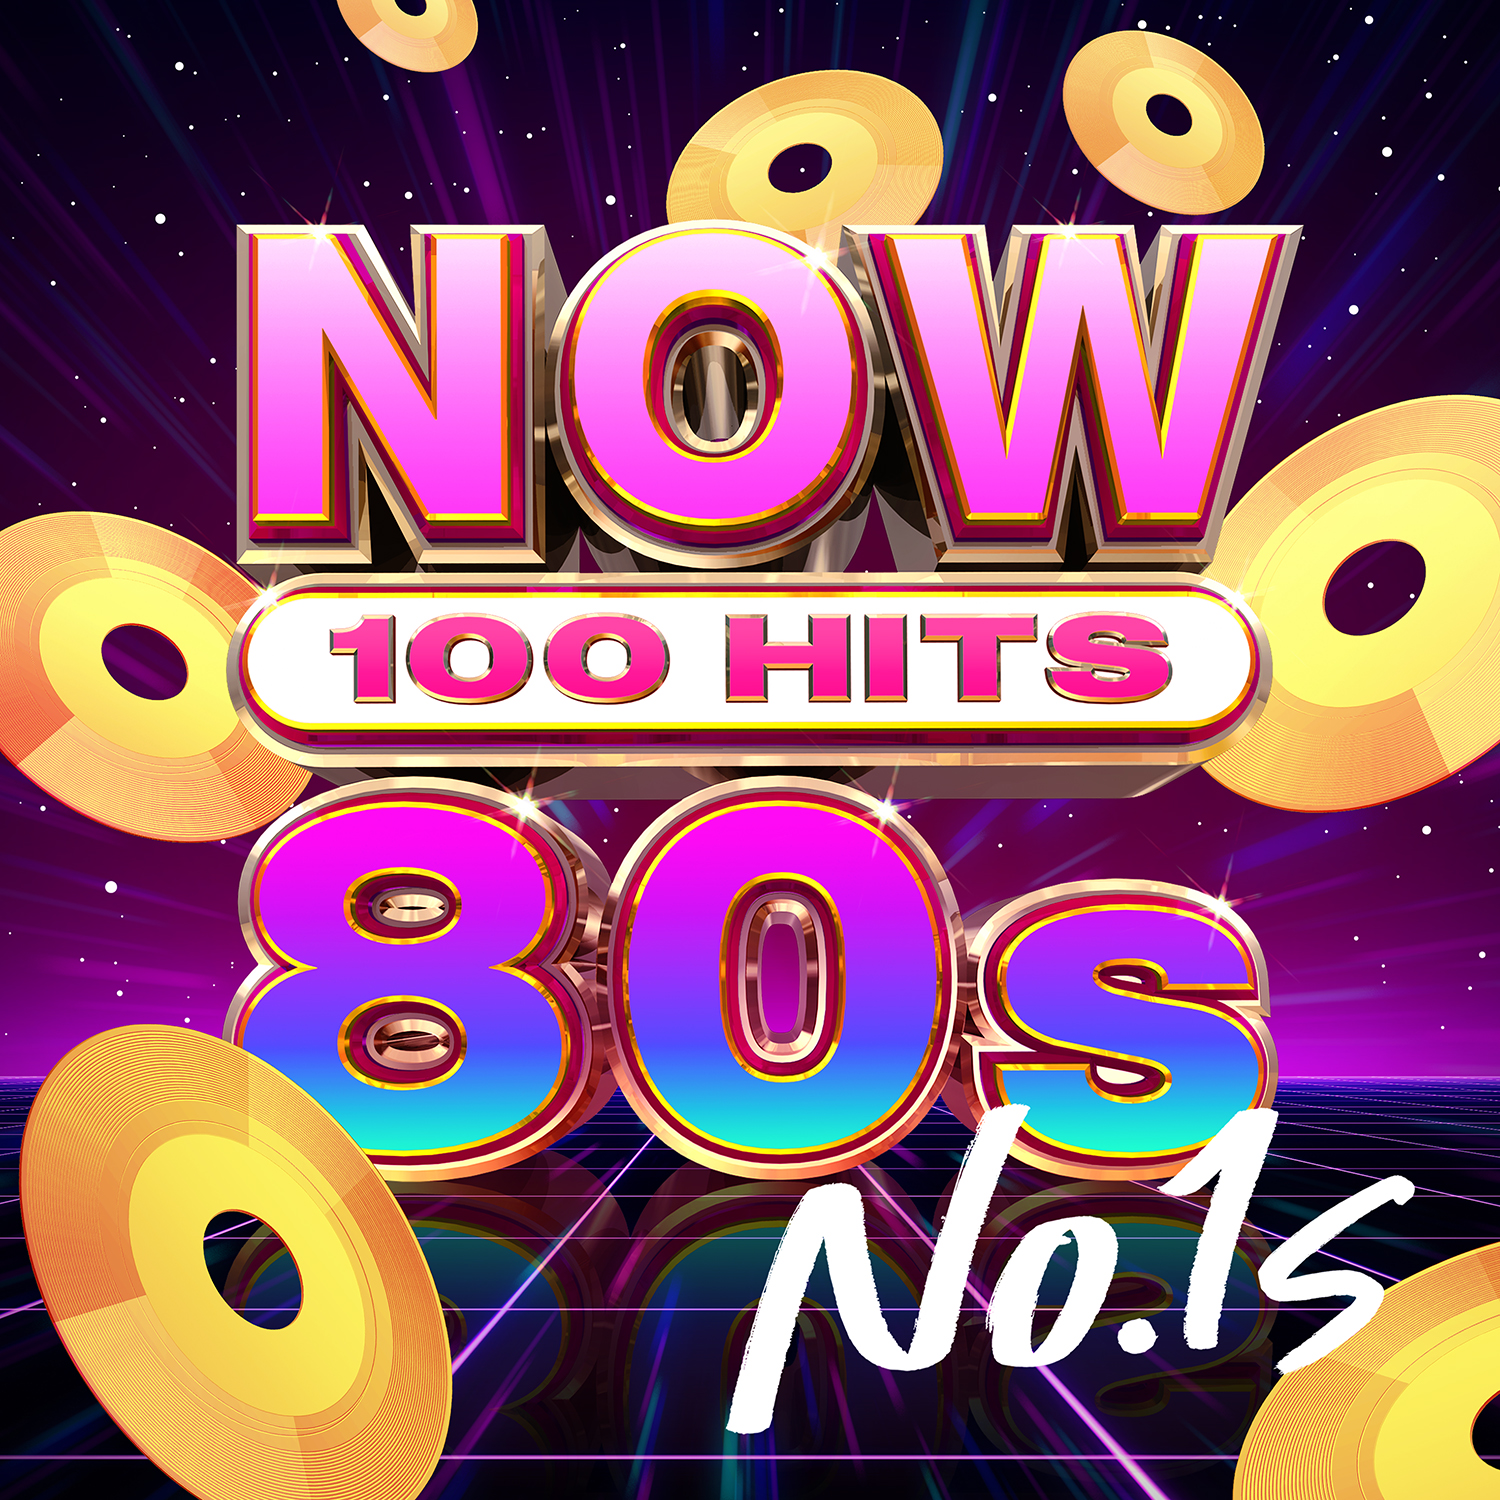 Now Thats What I Call Music! 64 | Now Thats What I Call